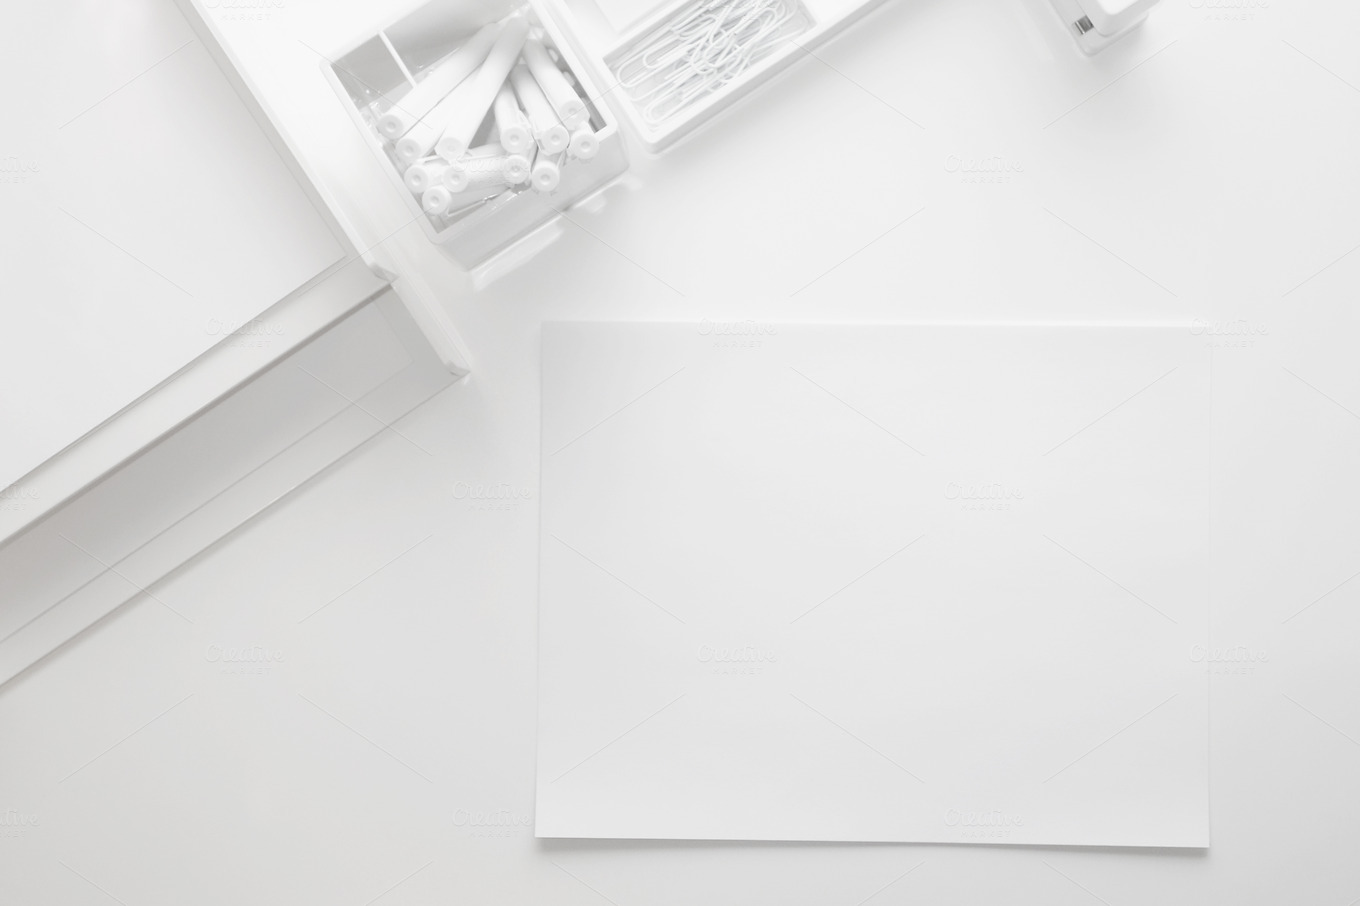 Clean And Modern Desk Business Photos On Creative Market